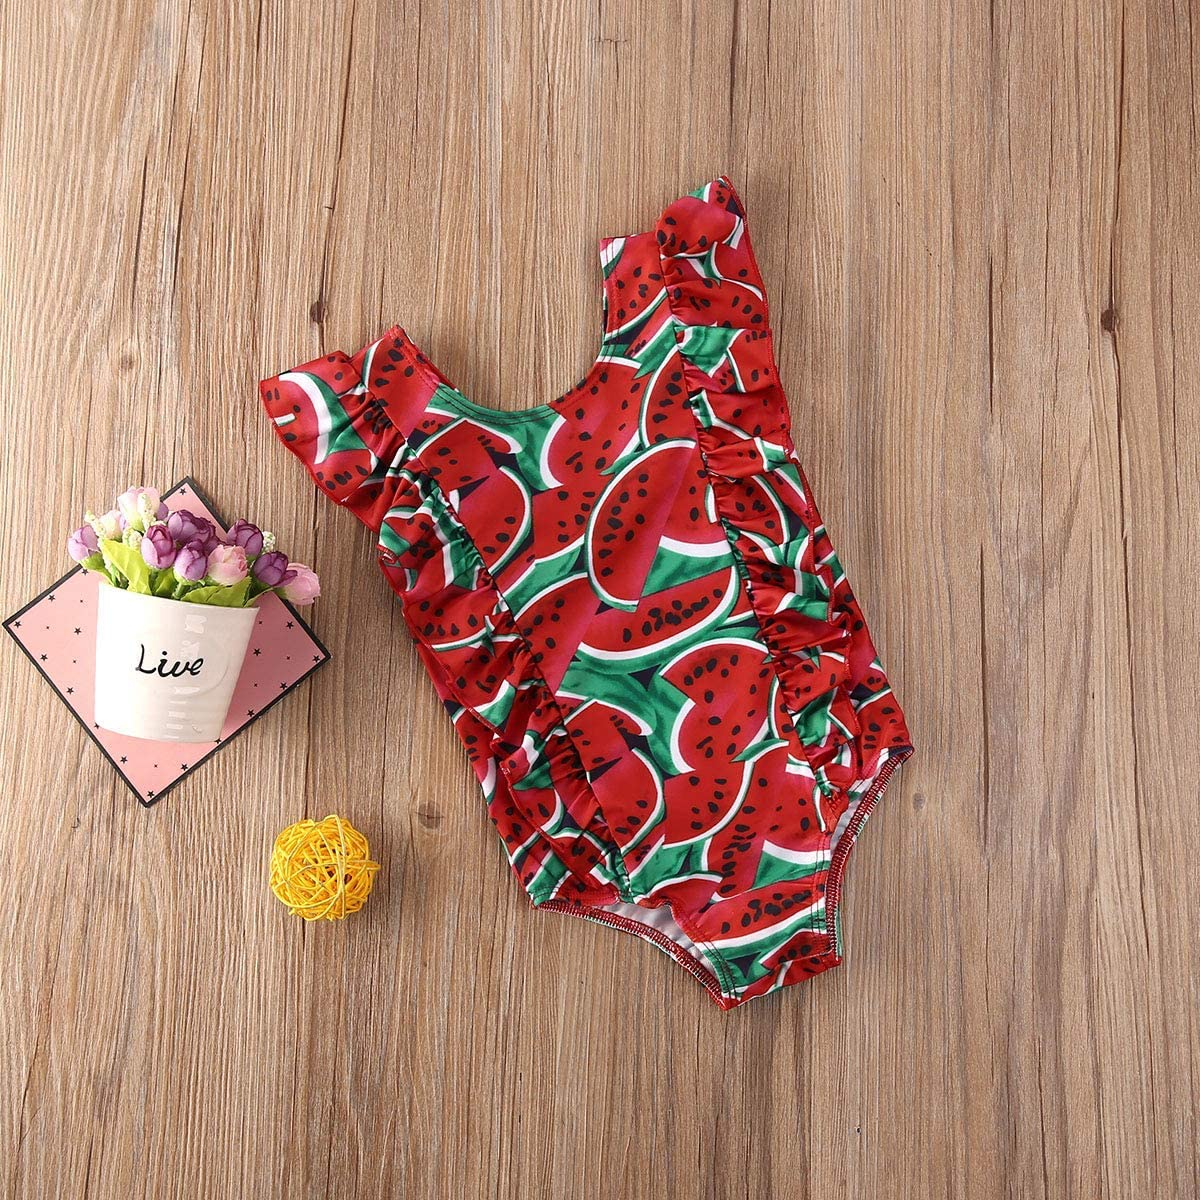 6 Years Baby Girl Swimsuit Toddler Swimwear Newborn Swimming Suit 1t 2t 3t 4t Bikini Sets One Pieces 6 Months